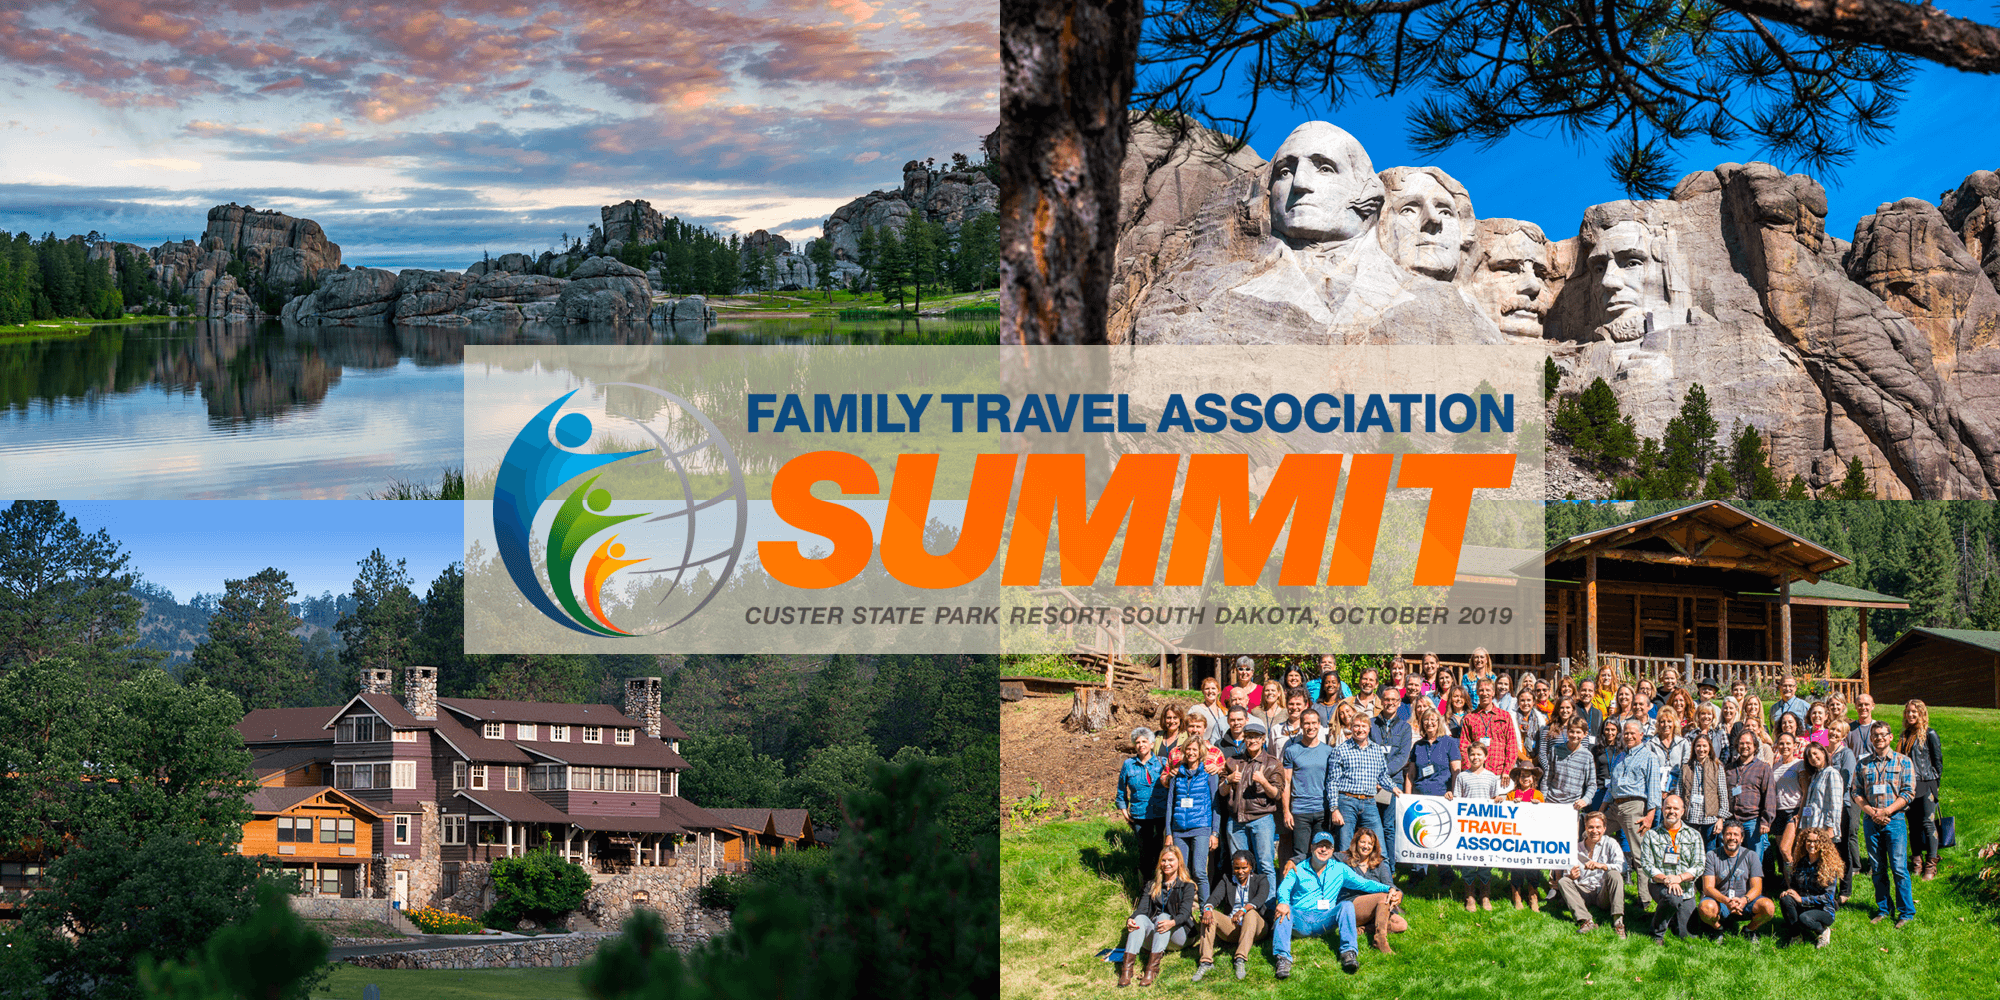 Family Travel Association Summit